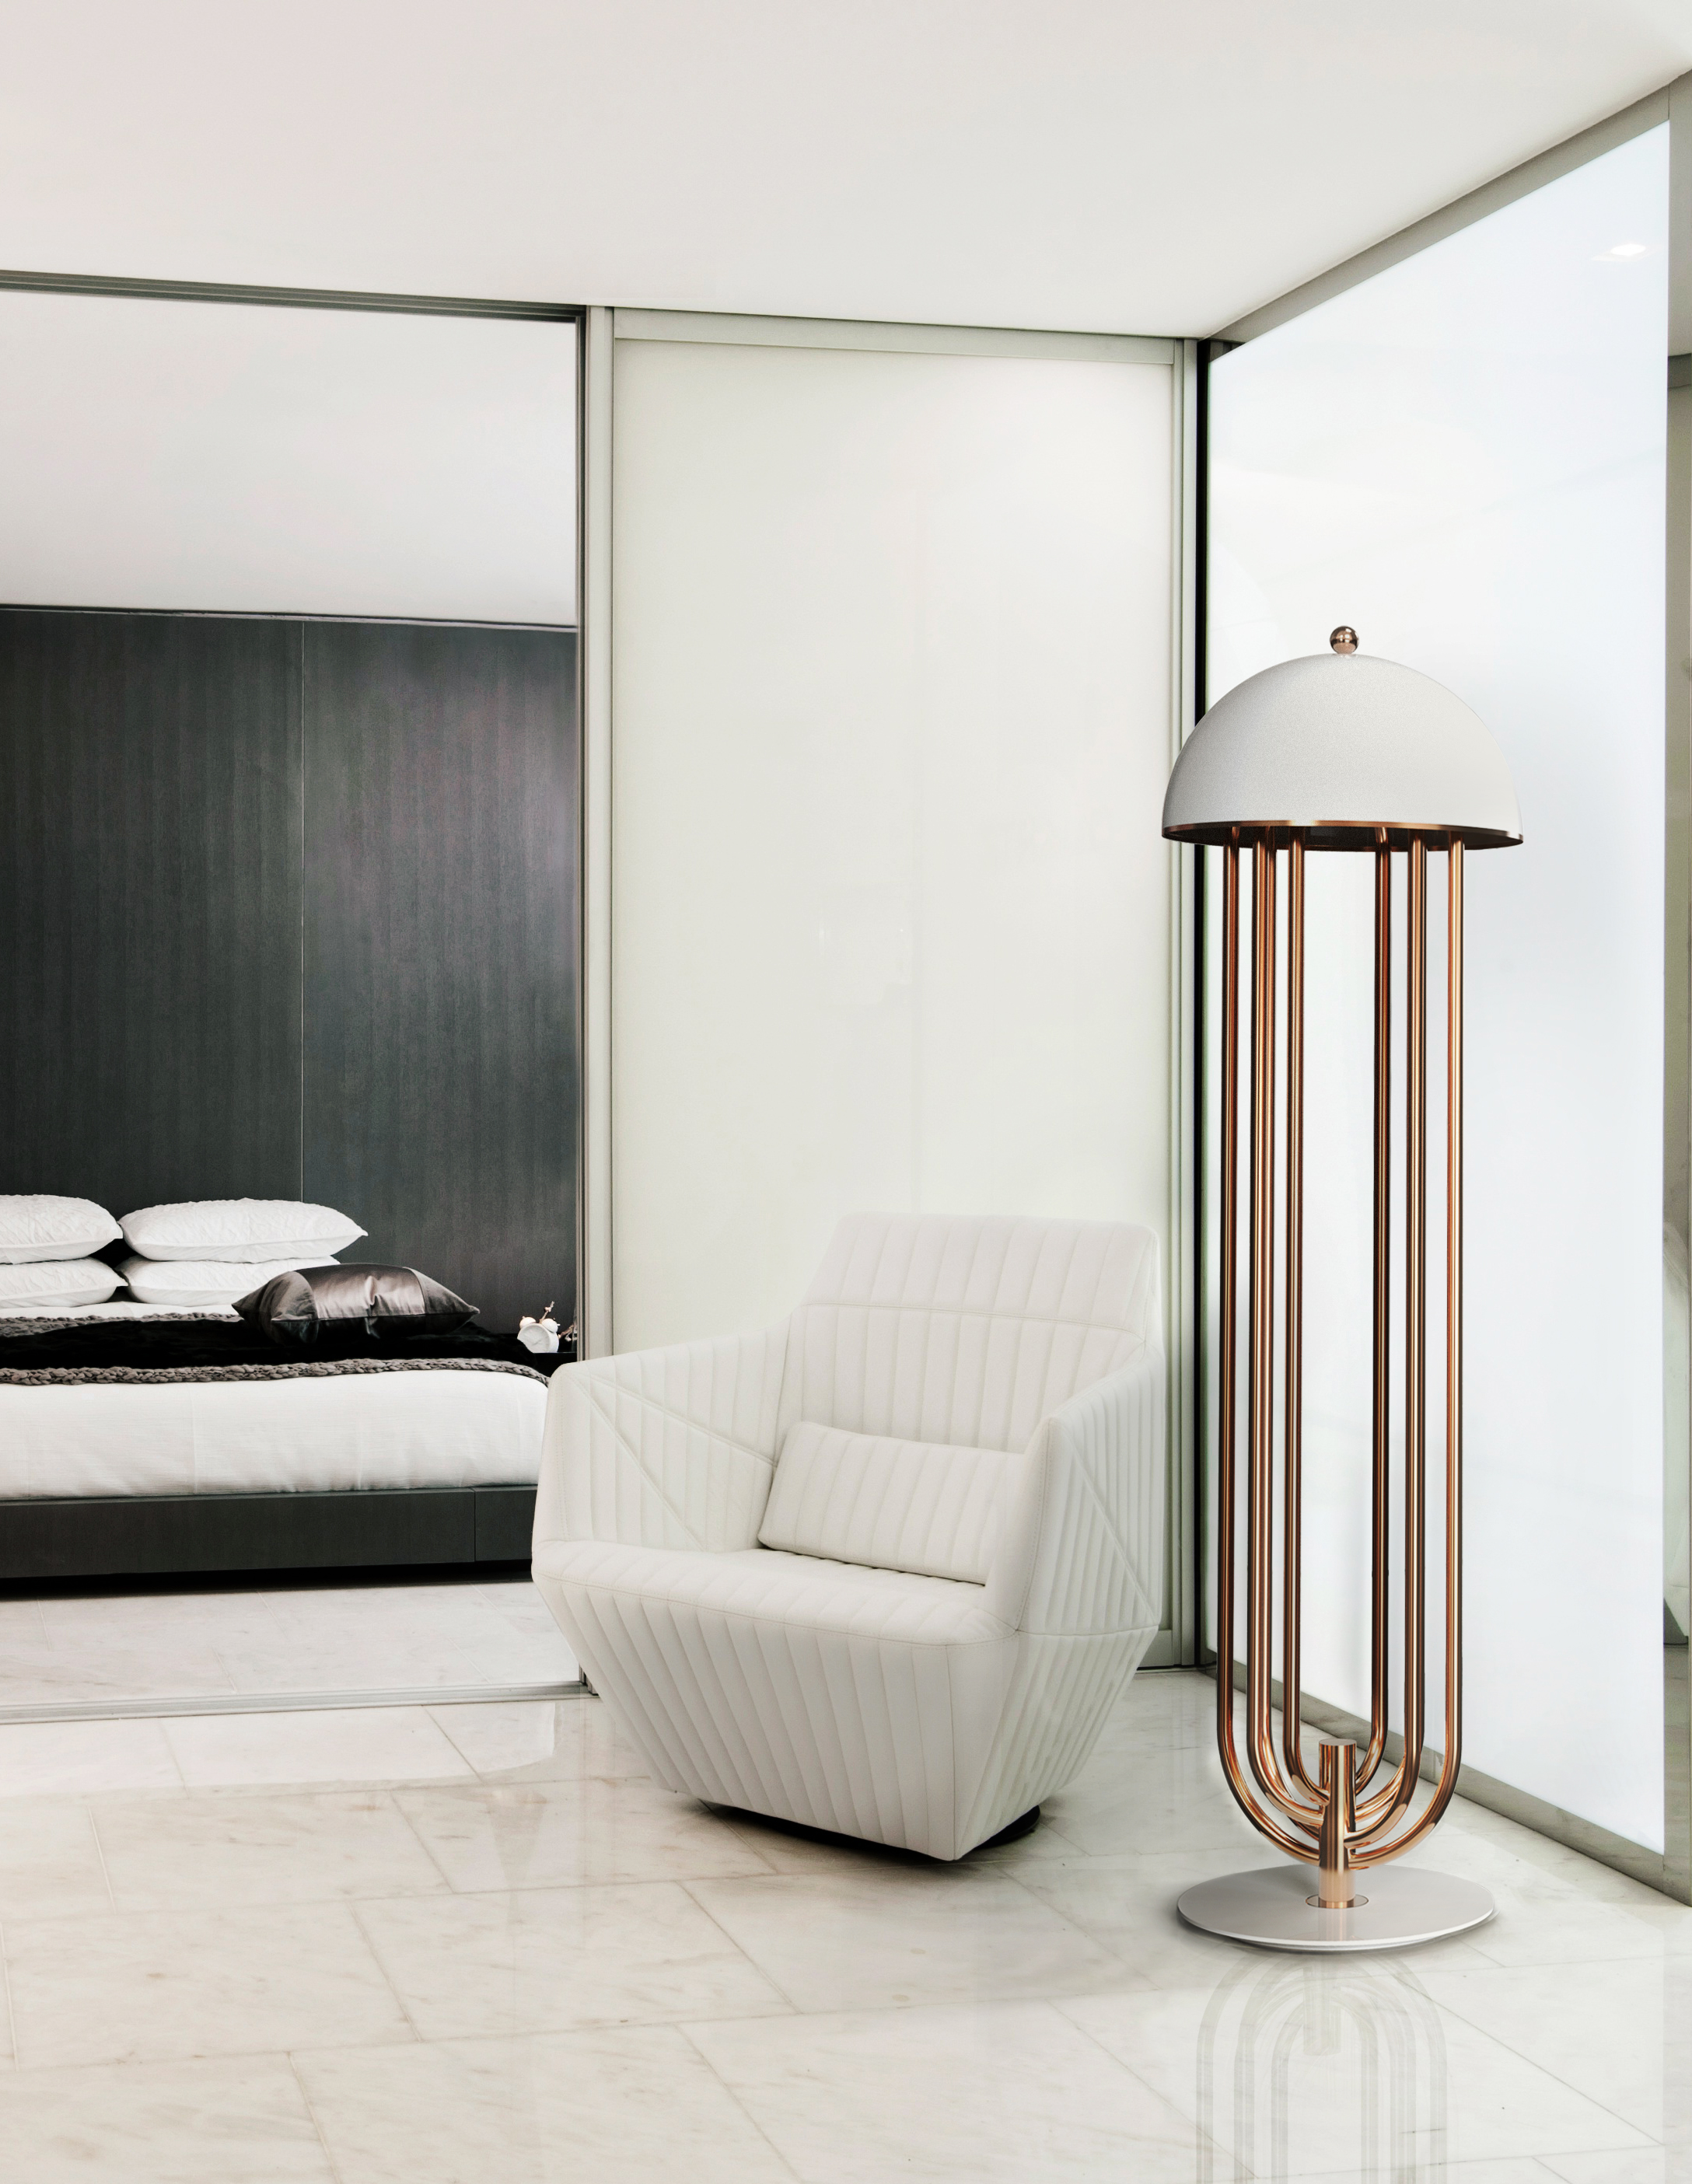 Golden Floor Lamps to Elevate Your Lighting Design This Spring (7) lighting design Golden Floor Lamps to Elevate Your Lighting Design This Spring Golden Floor Lamps to Elevate Your Lighting Design This Spring 7